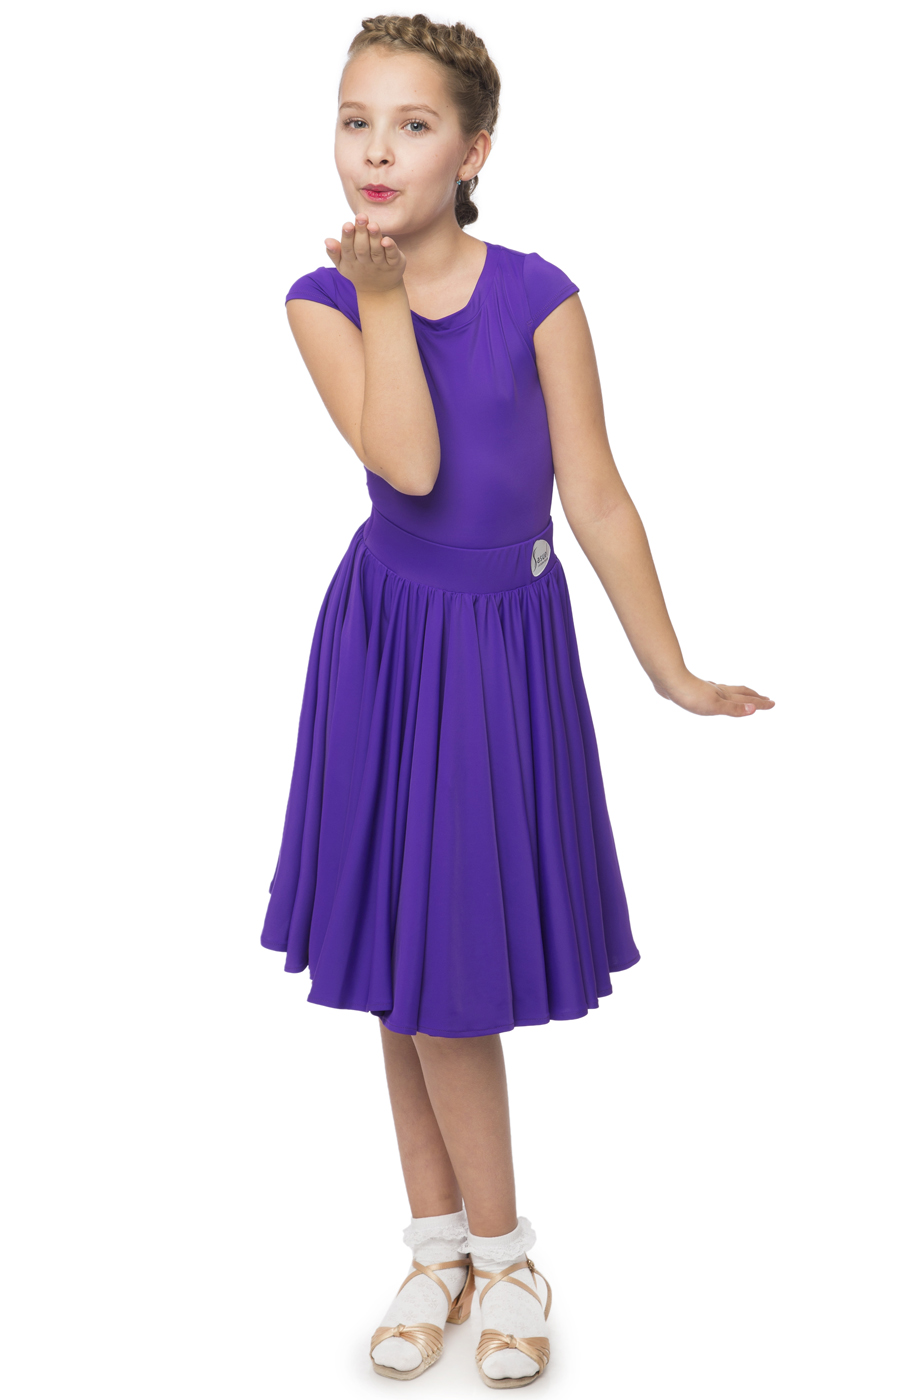 Malvina juvenile dress